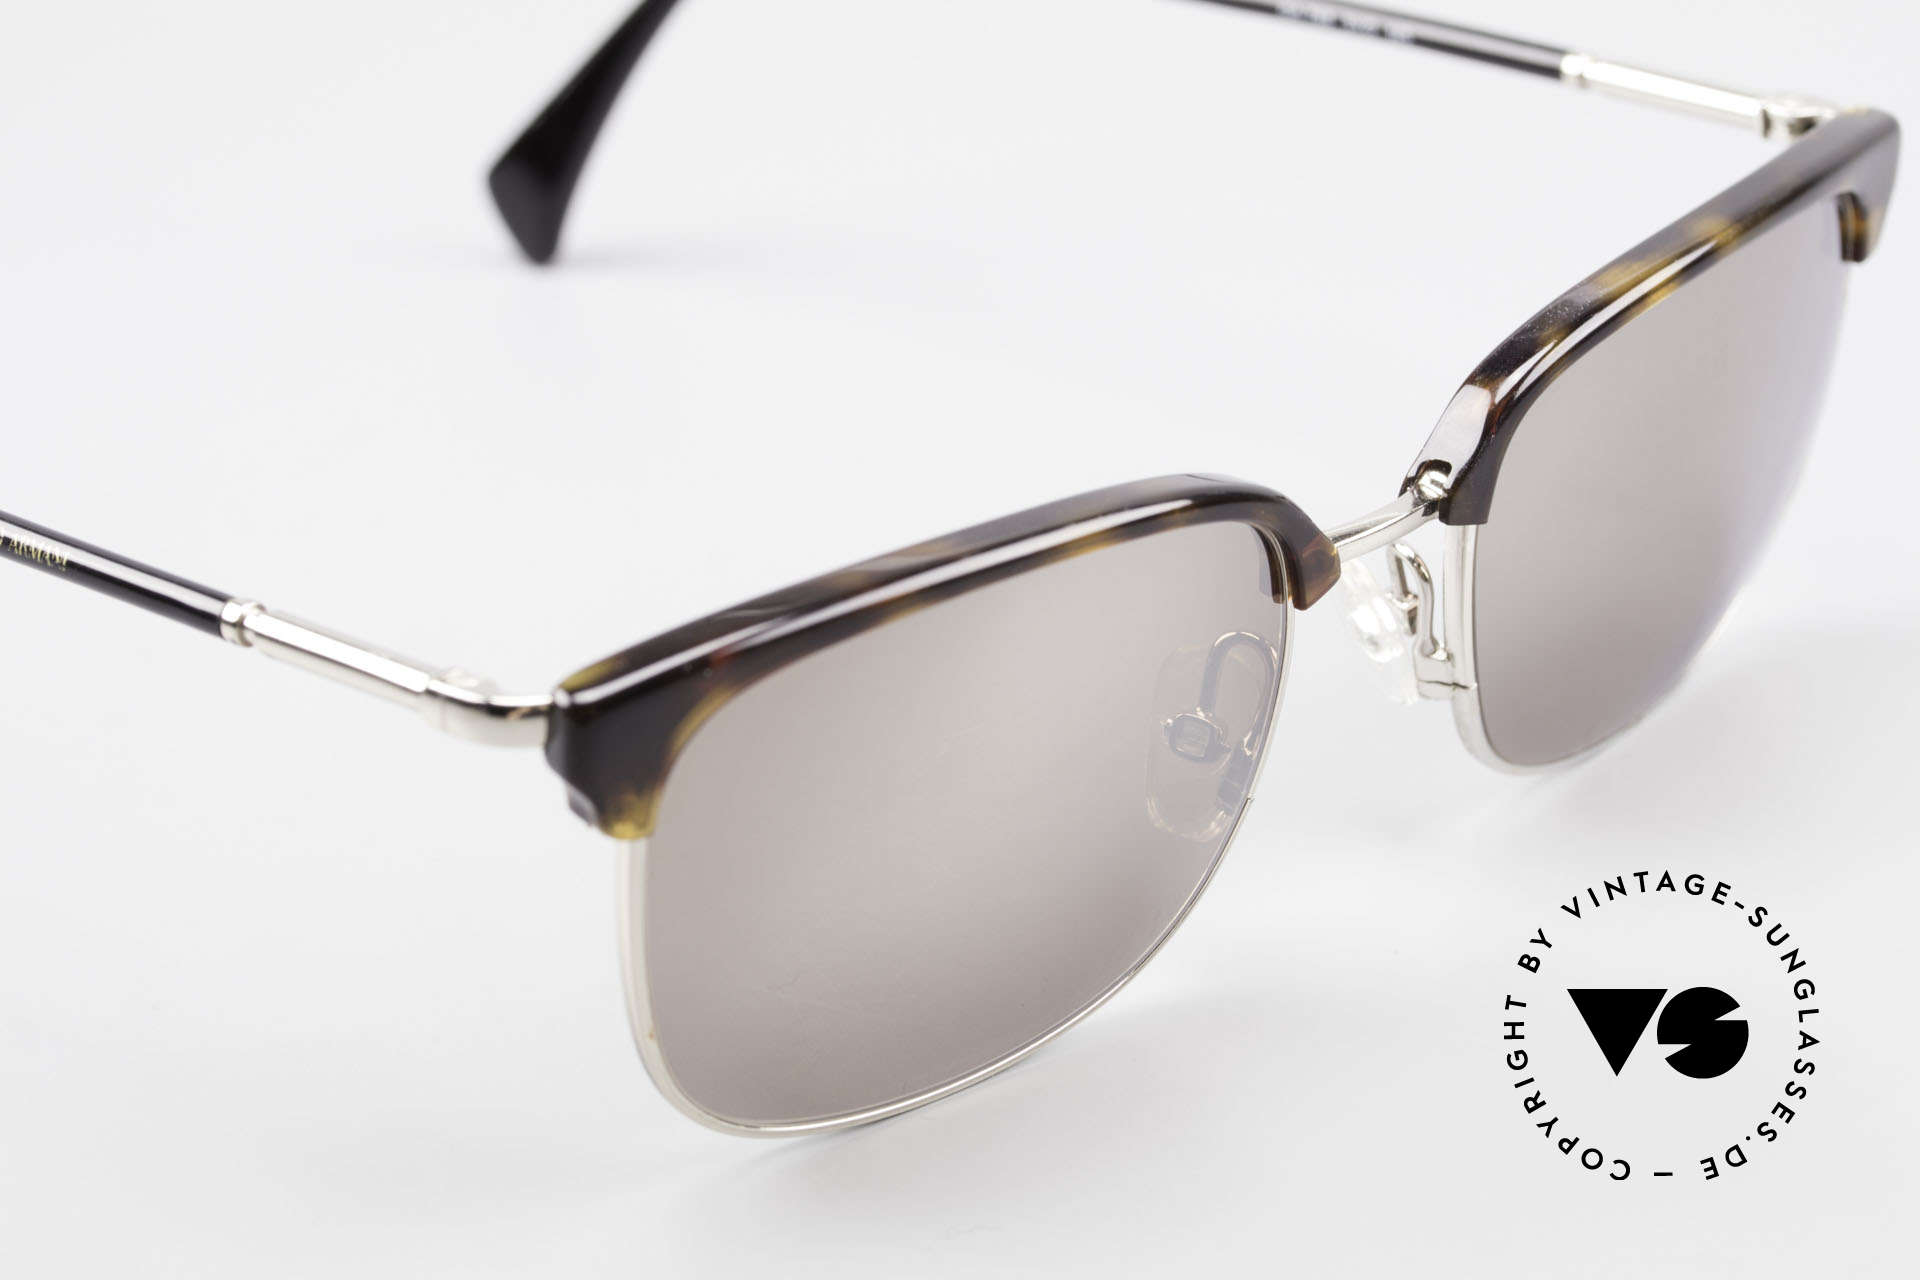 Giorgio Armani 788 Square Panto Sunglasses Men, 2. hand model; but in an absolutely mint condition, Made for Men